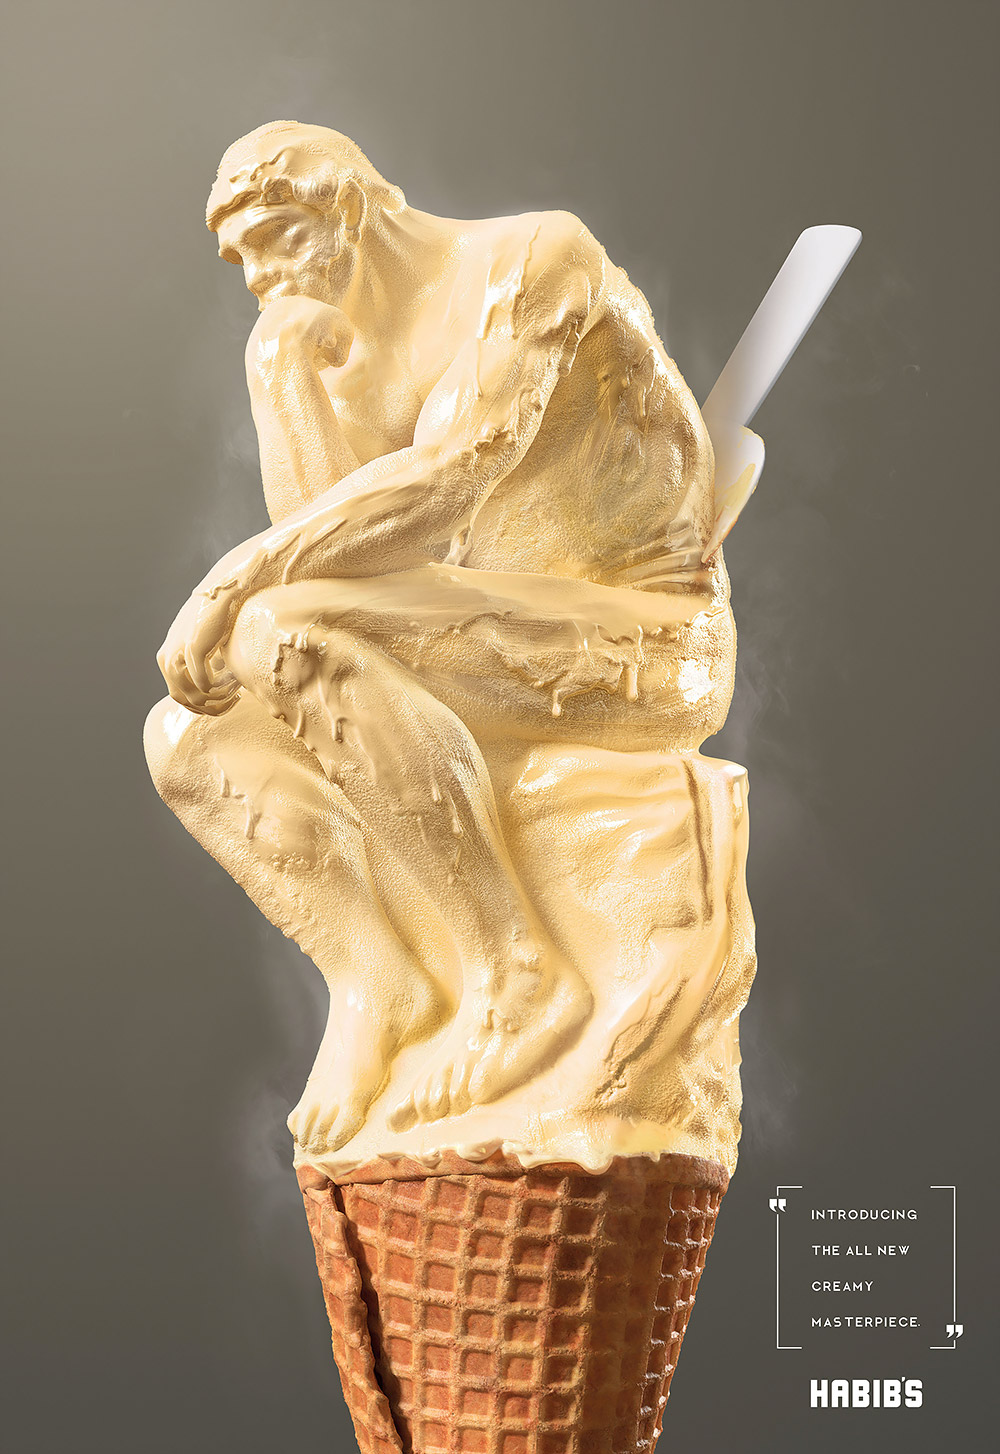 Brilliant Advertising Posters for Artisanal Ice Cream (7 pics)